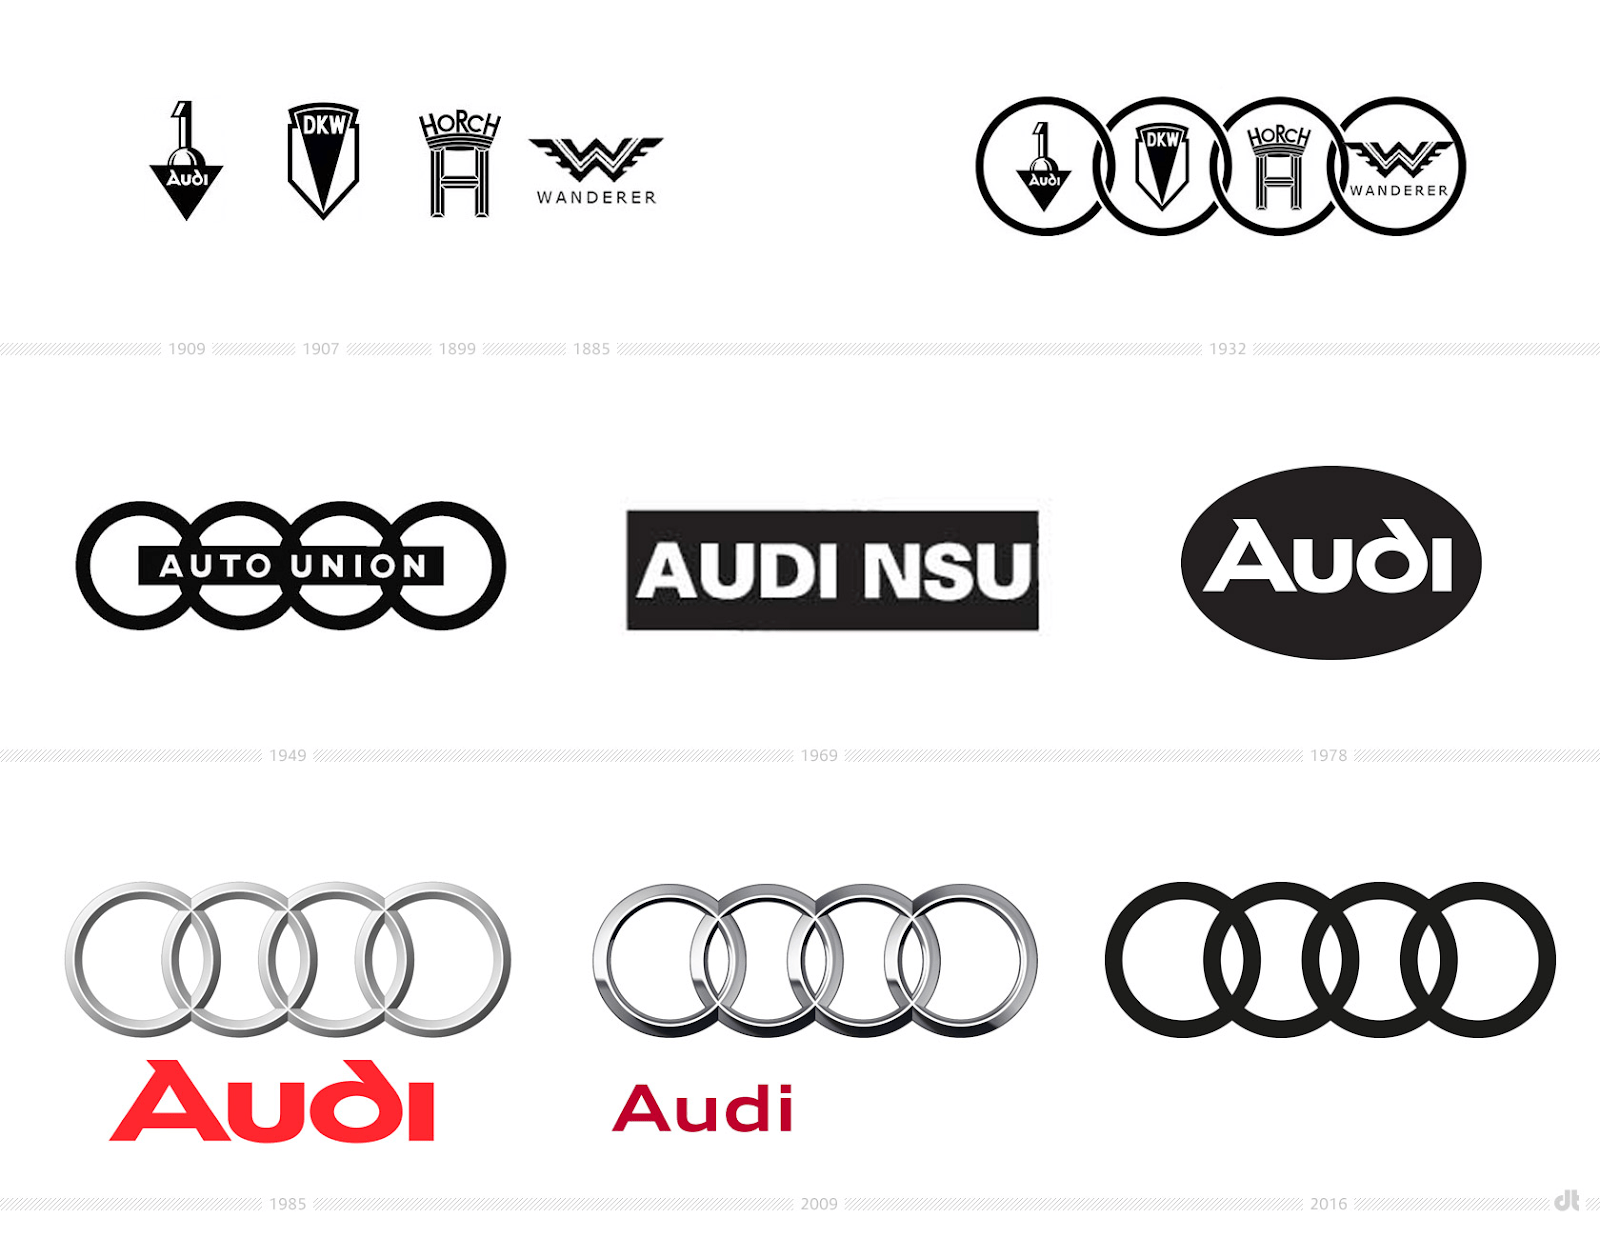 Why Is Audi Called Audi